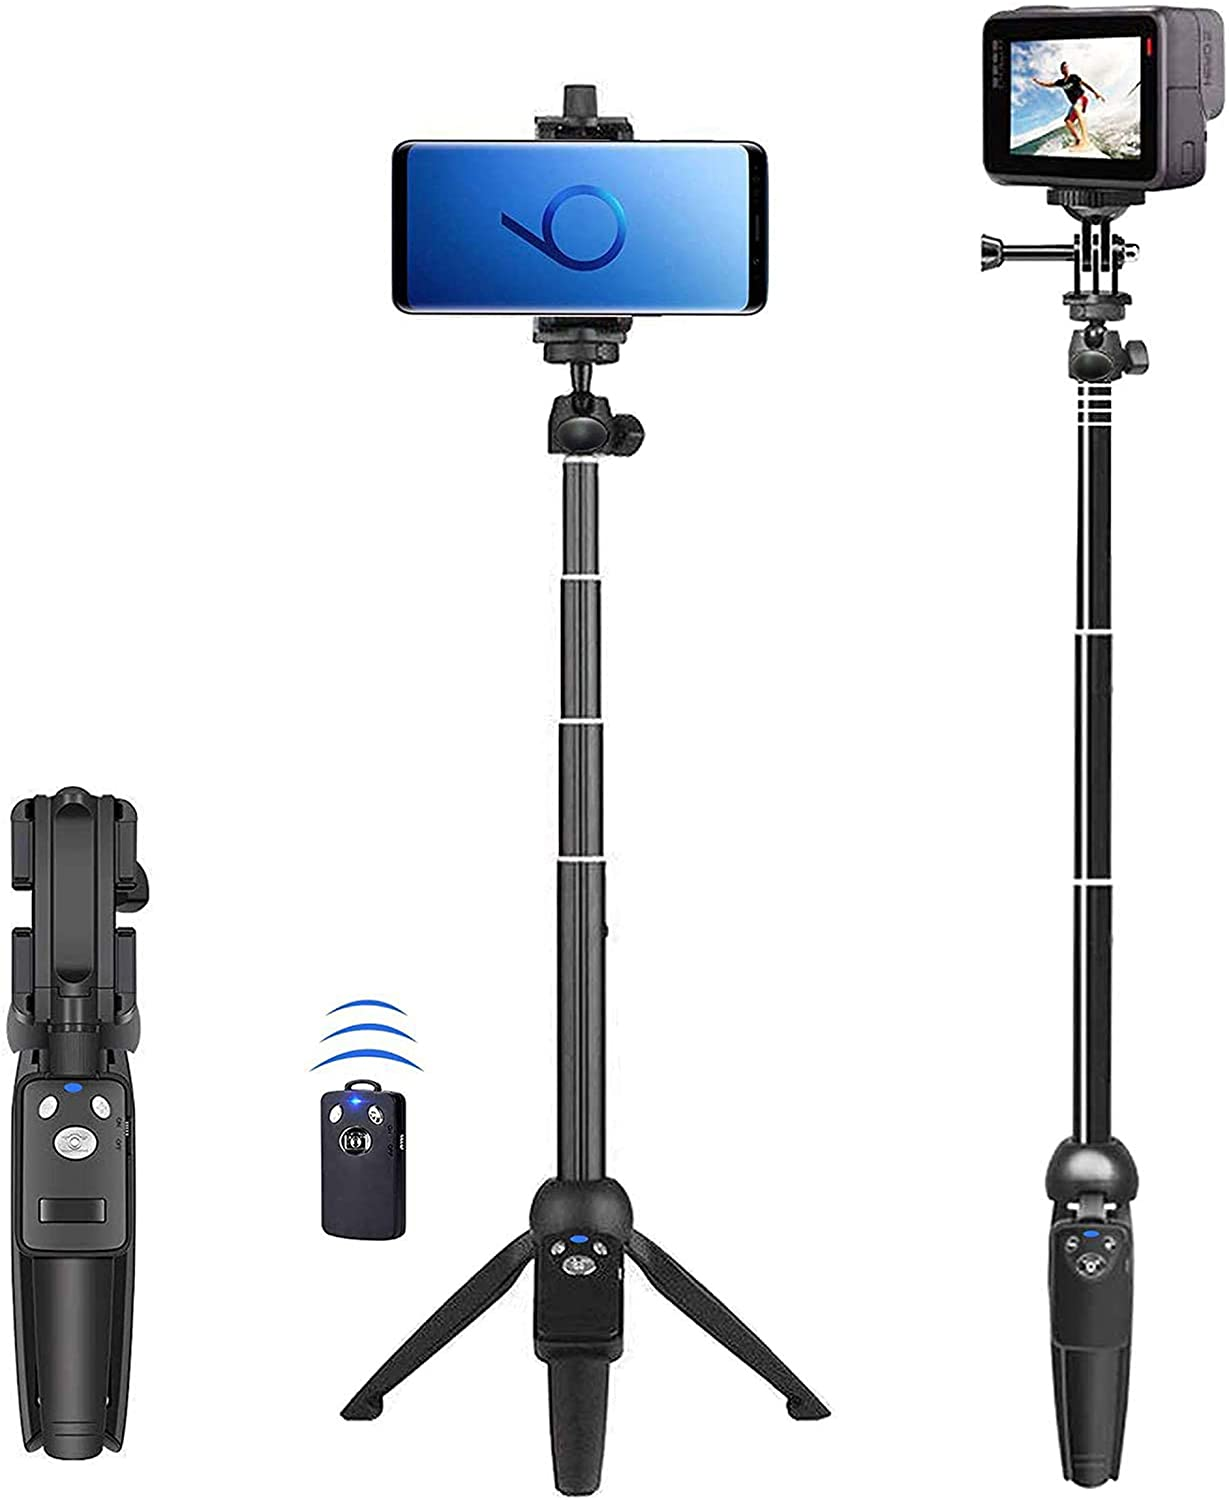 BZE PHONE TRIPOD - Best tripod for iphone 12